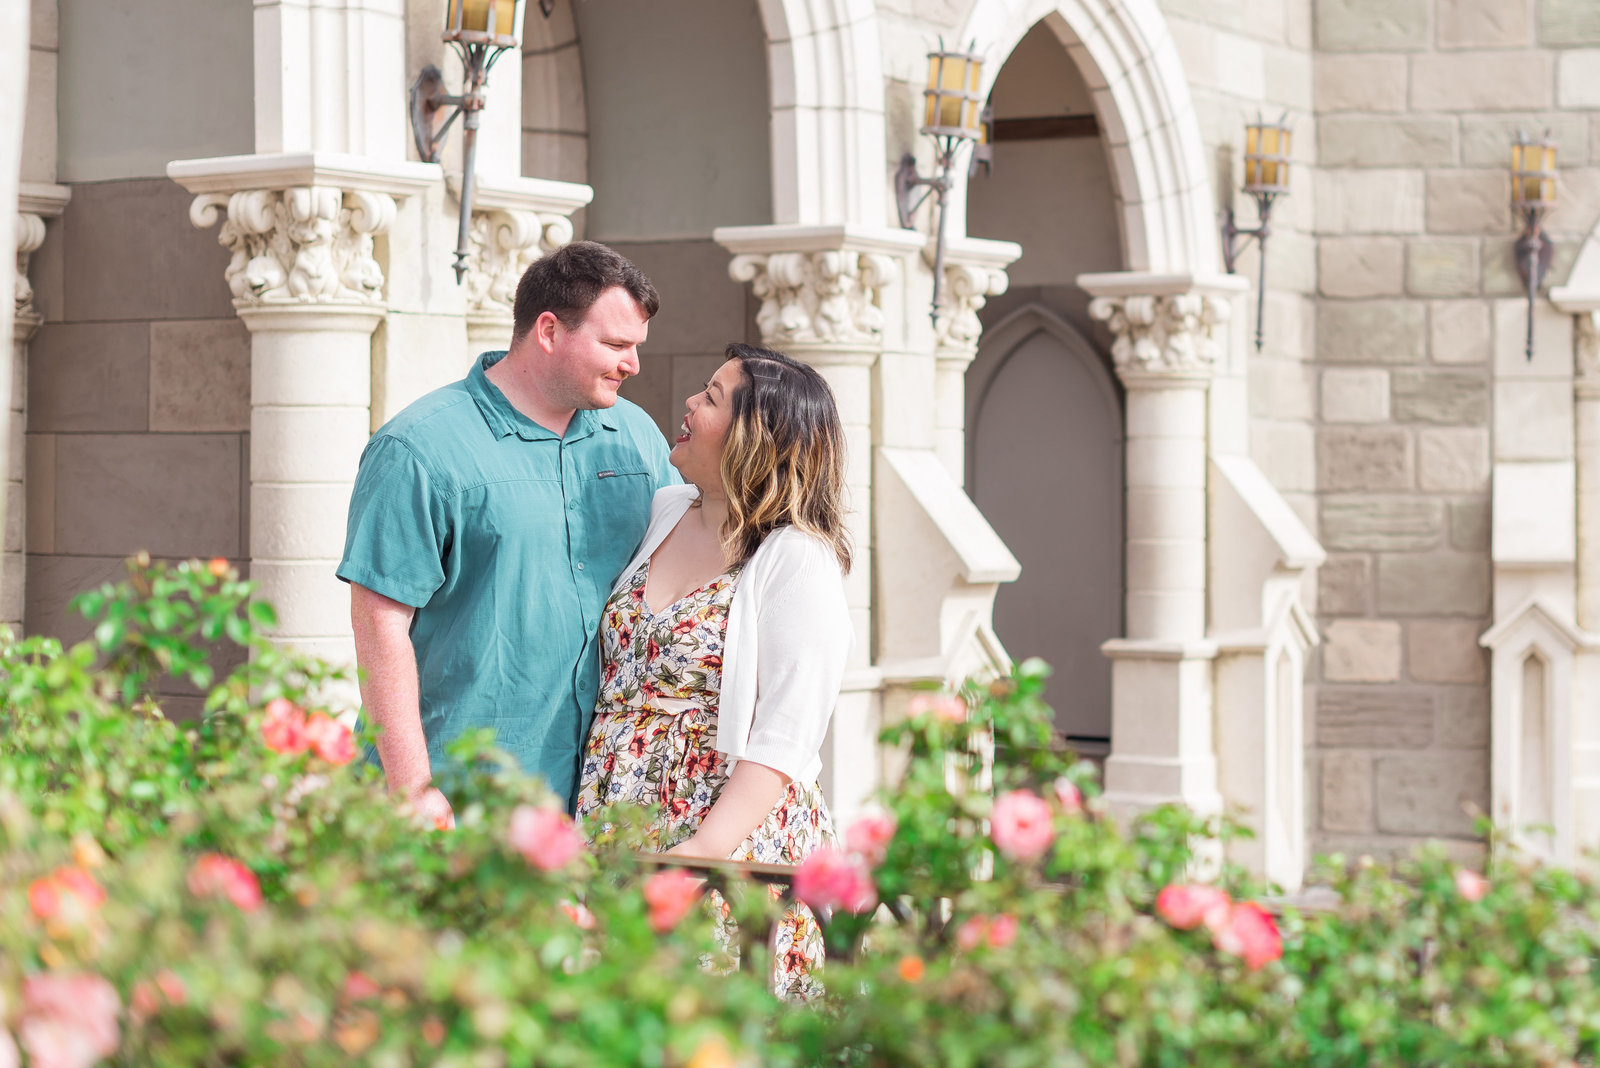 Disney Engagement Photographer, Disney Photography, Disney Wedding Photographer, Magic Kingdom Photography